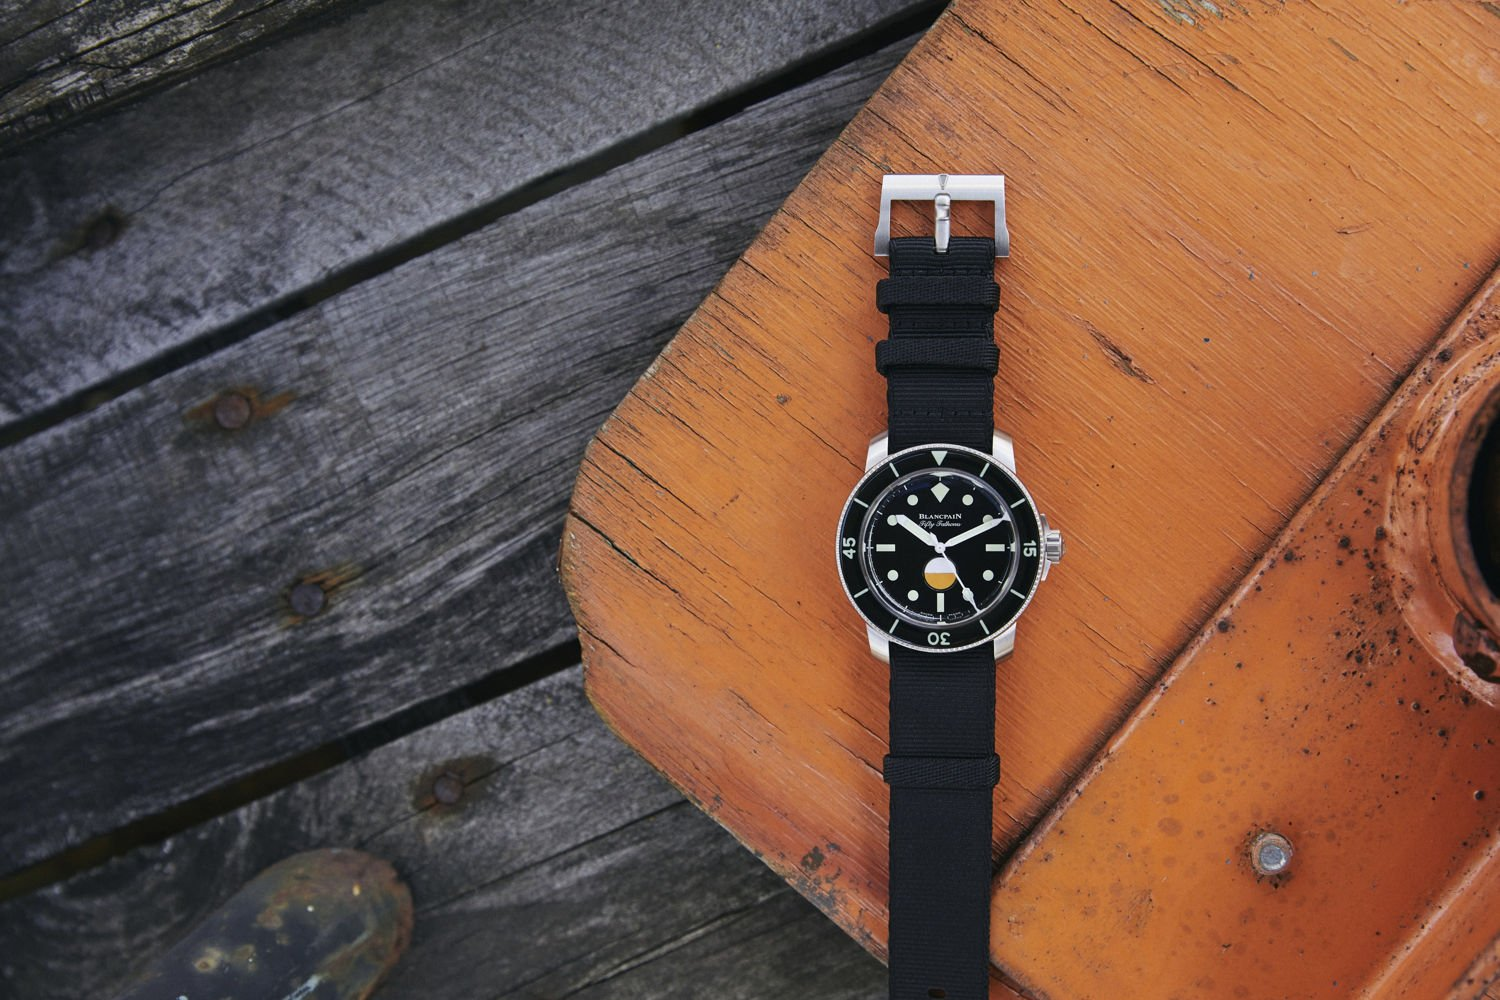 Blancpain Fifty Fathoms MIL-SPEC Edición Limitada